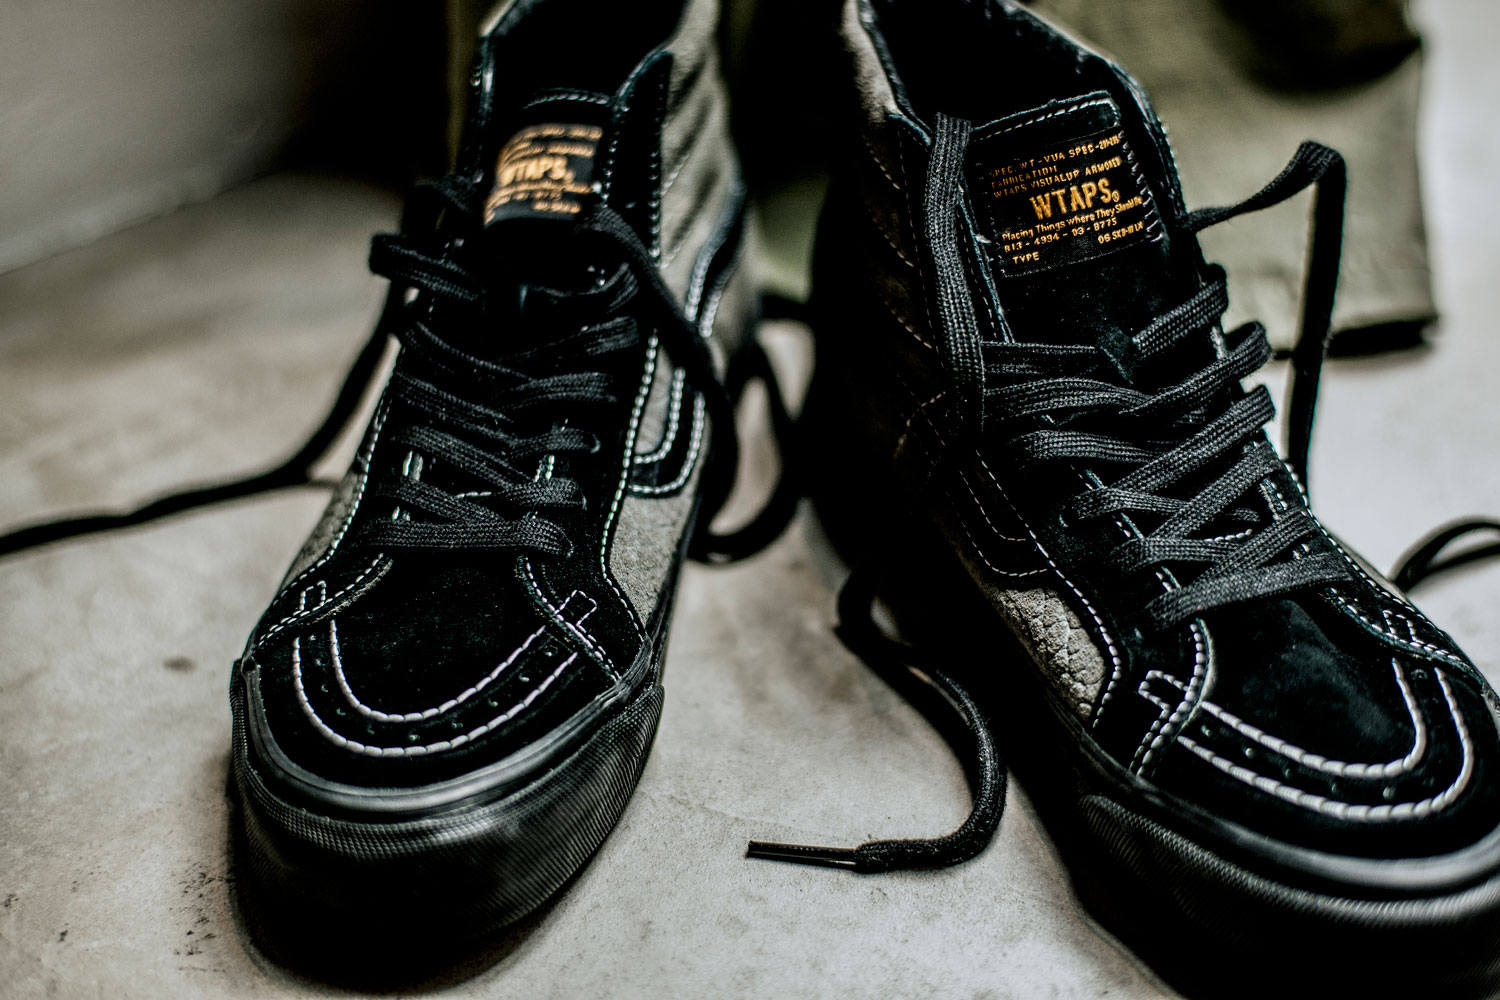 Vault-by-Vans-x-WTAPS_OG-Sk8-Hi-LX_close-up